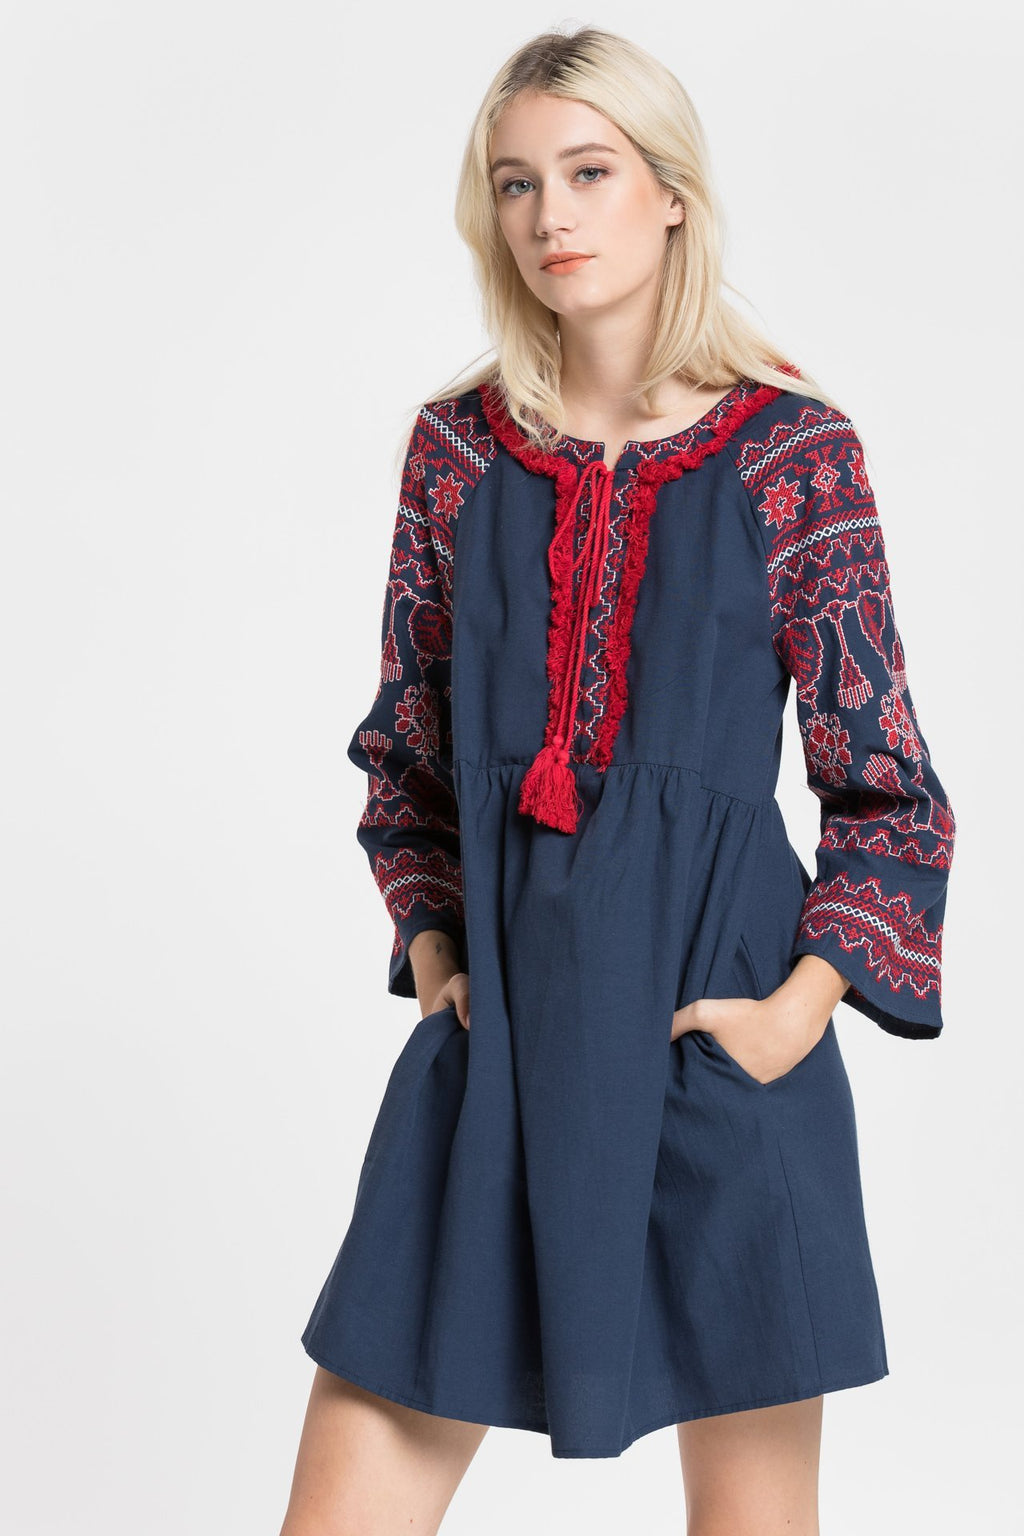 EVERYTHING YOU DO EMBROIDERED DRESS/TOP - RishWish